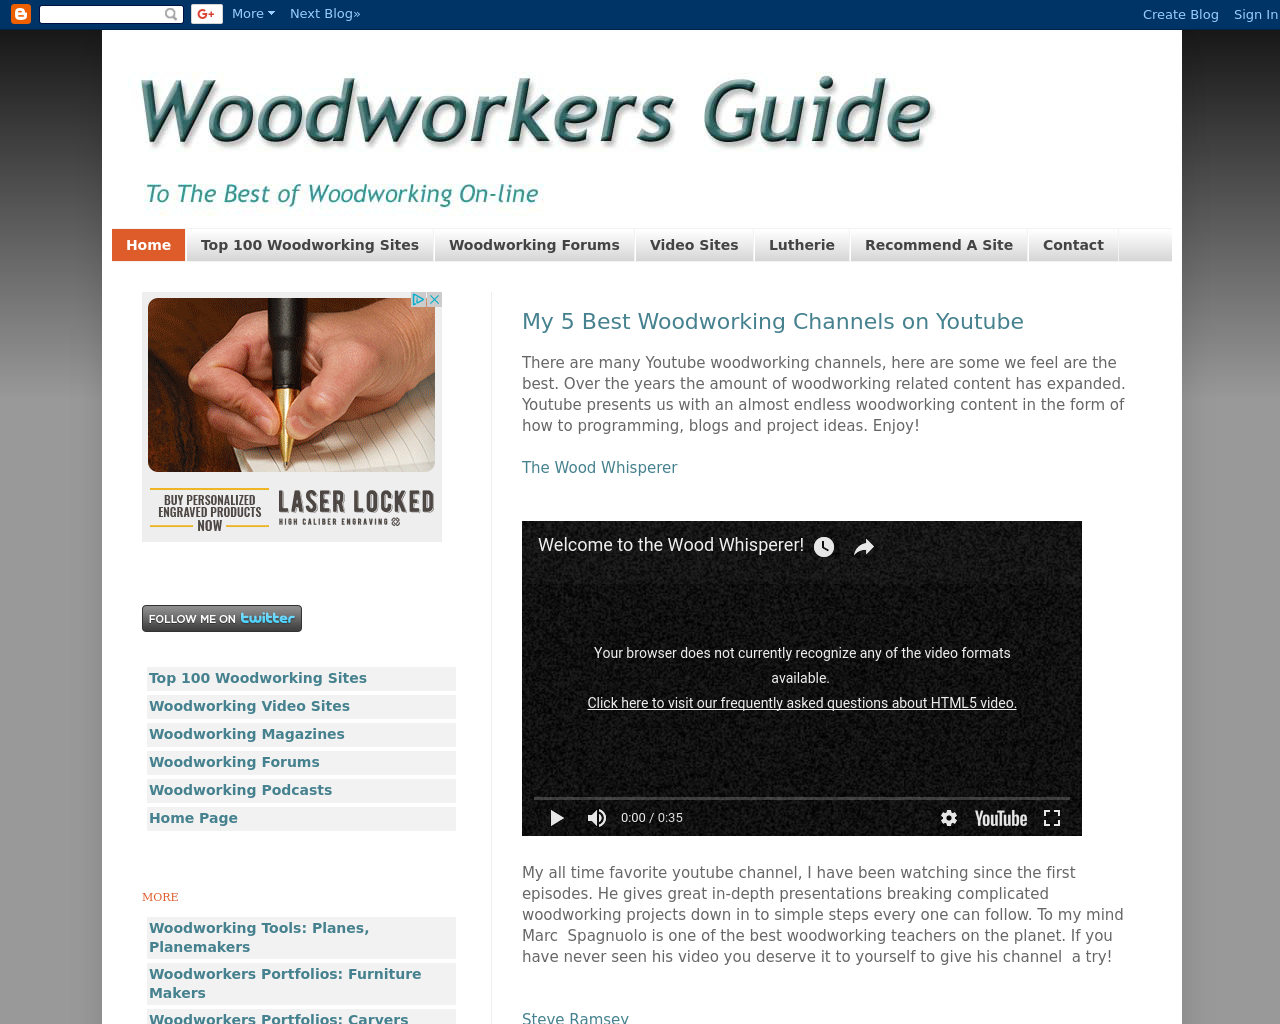 Woodworkers-Guide-Advertising-Reviews-Pricing